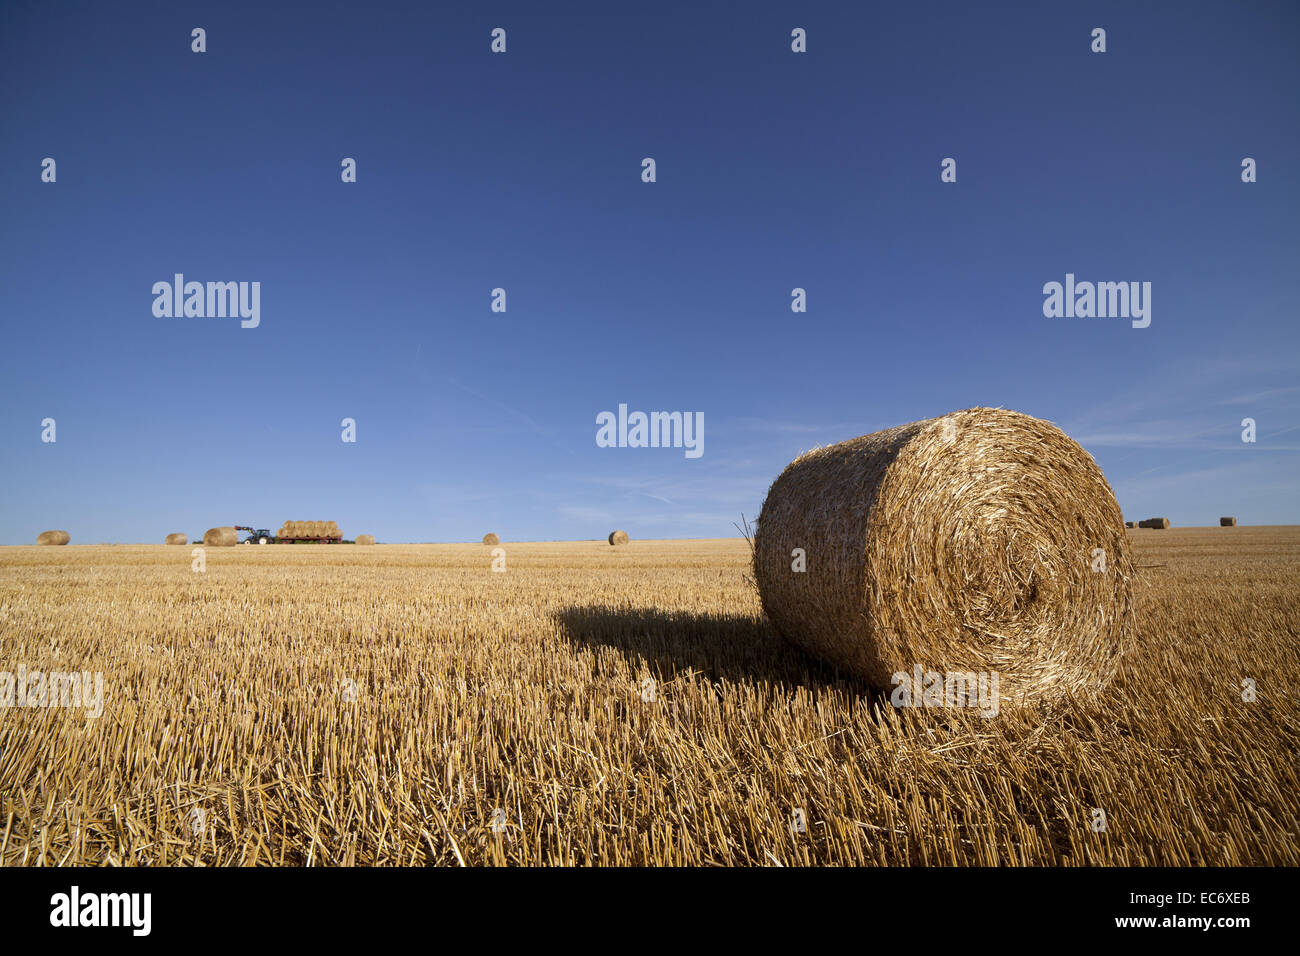 Straw bale with tractor in backround. Wideangle shot - Stock Image